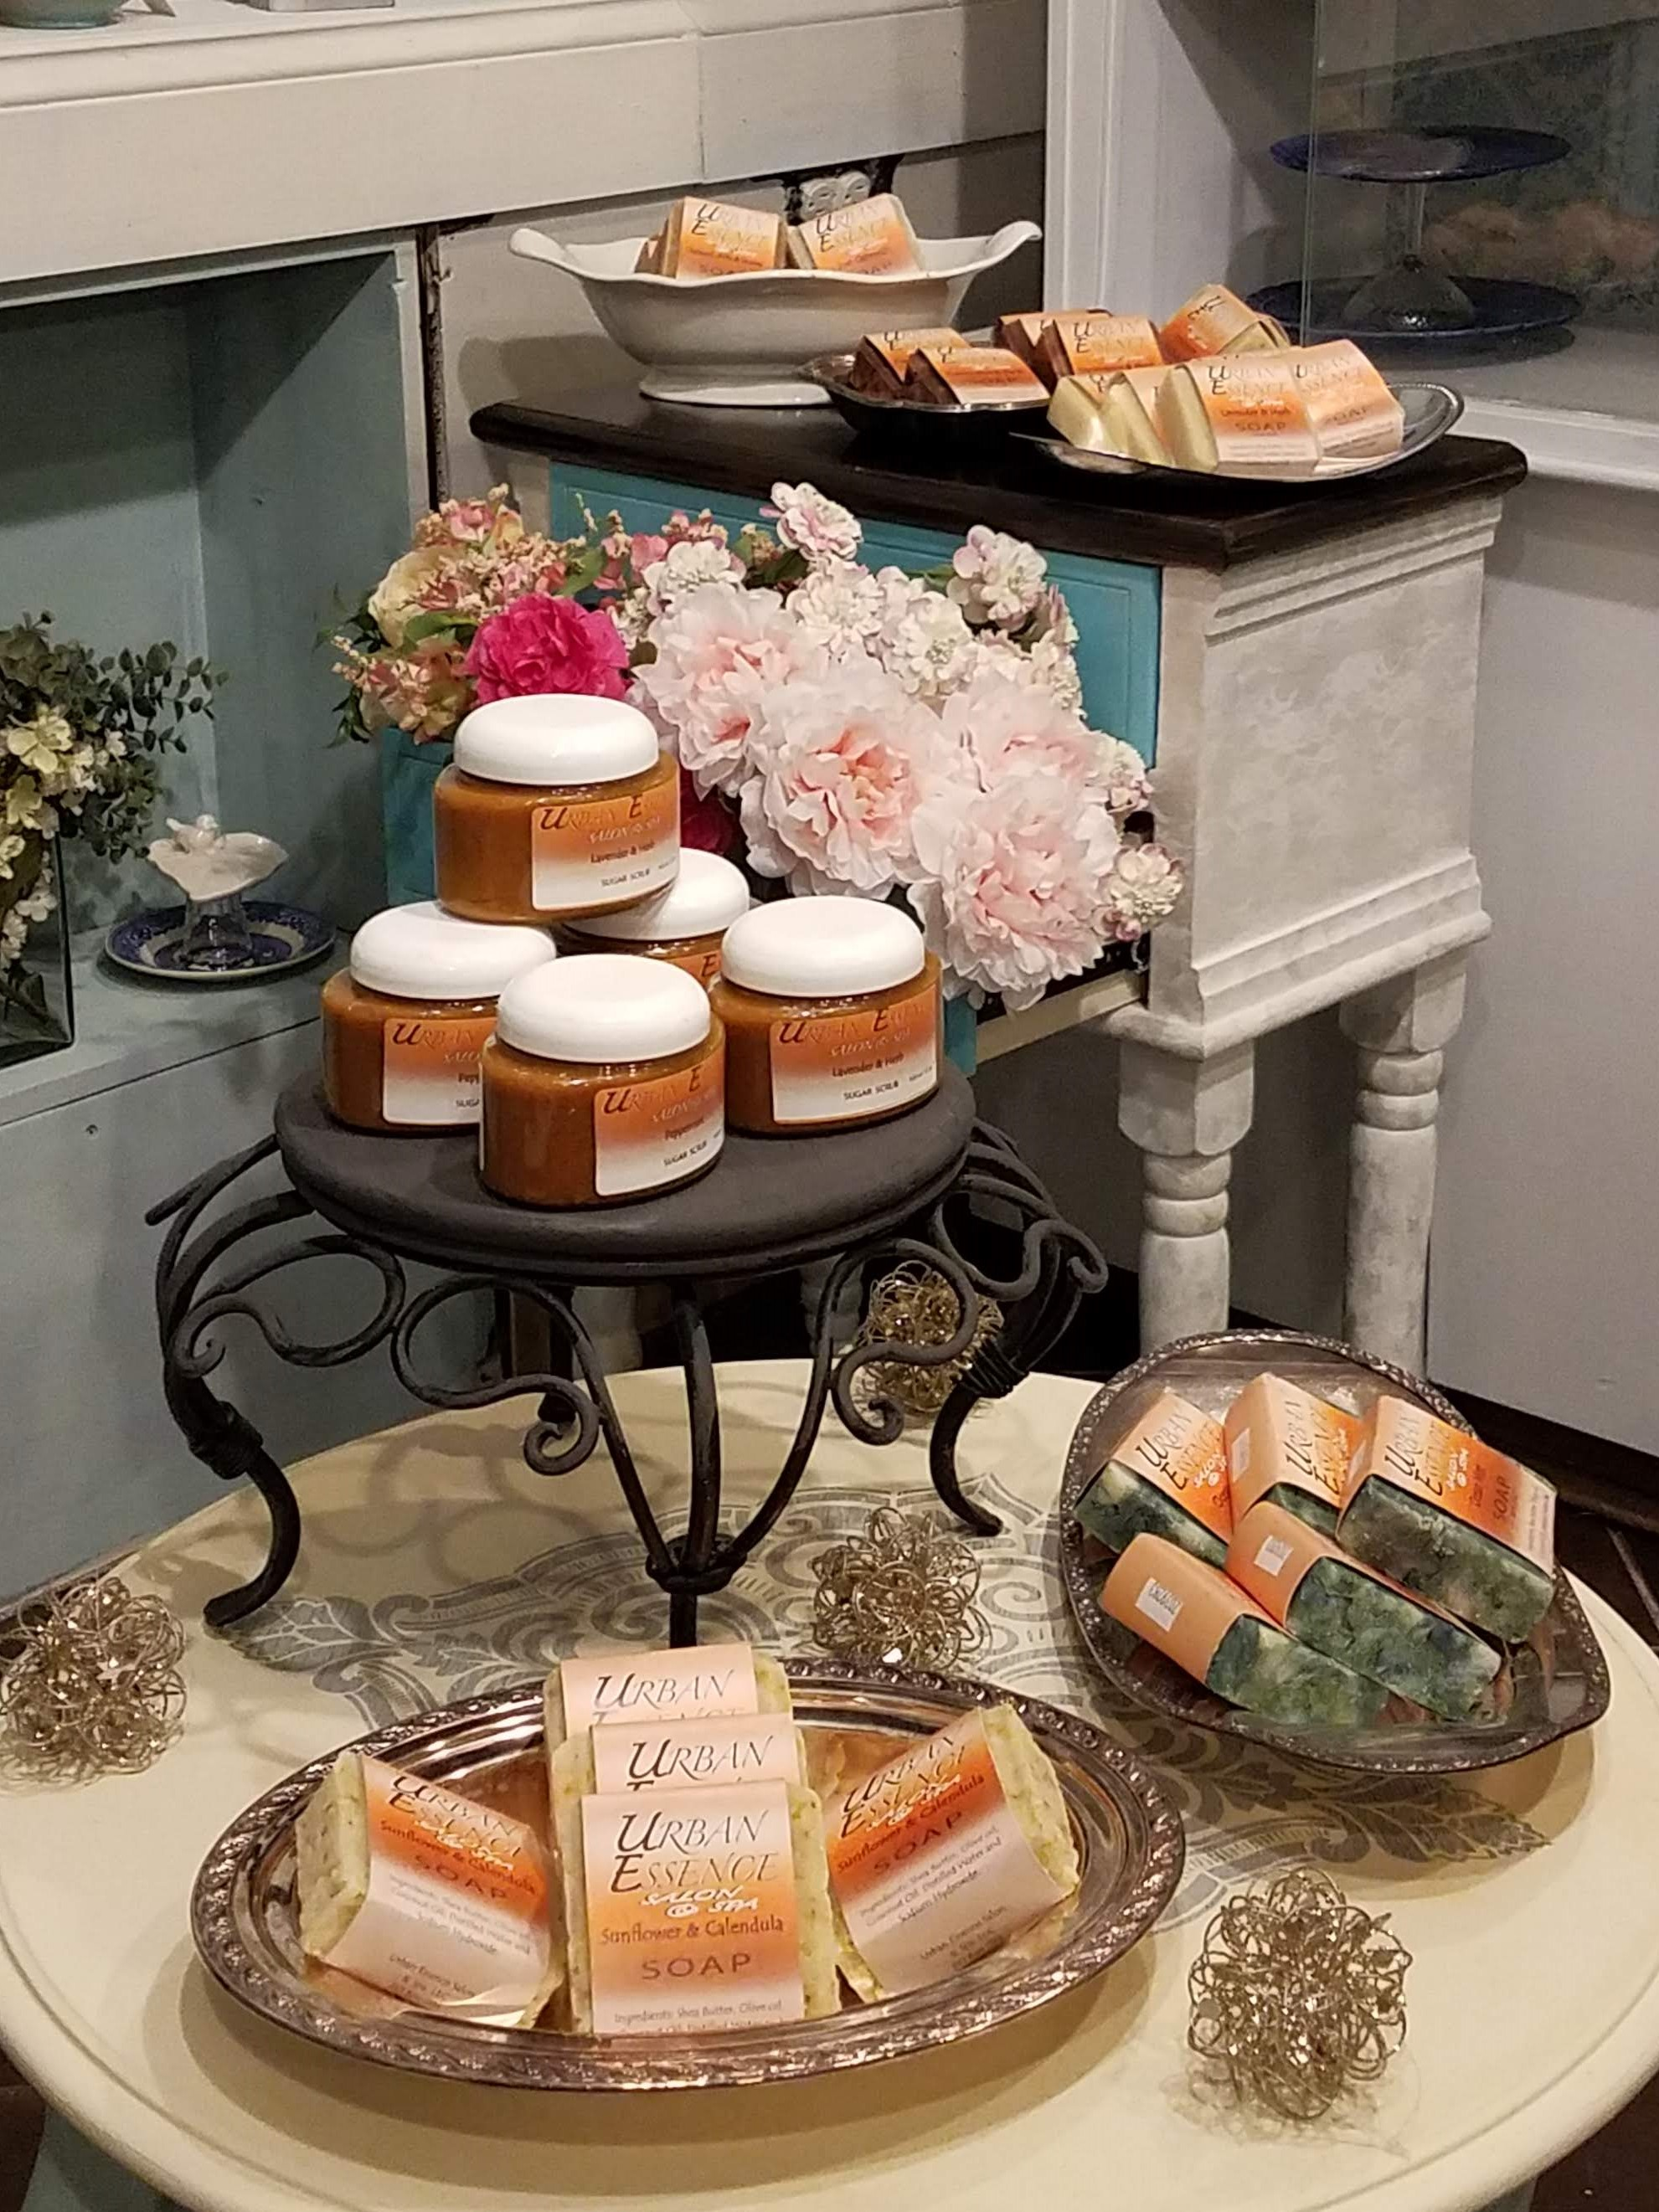 Gourmet Luxury soap display